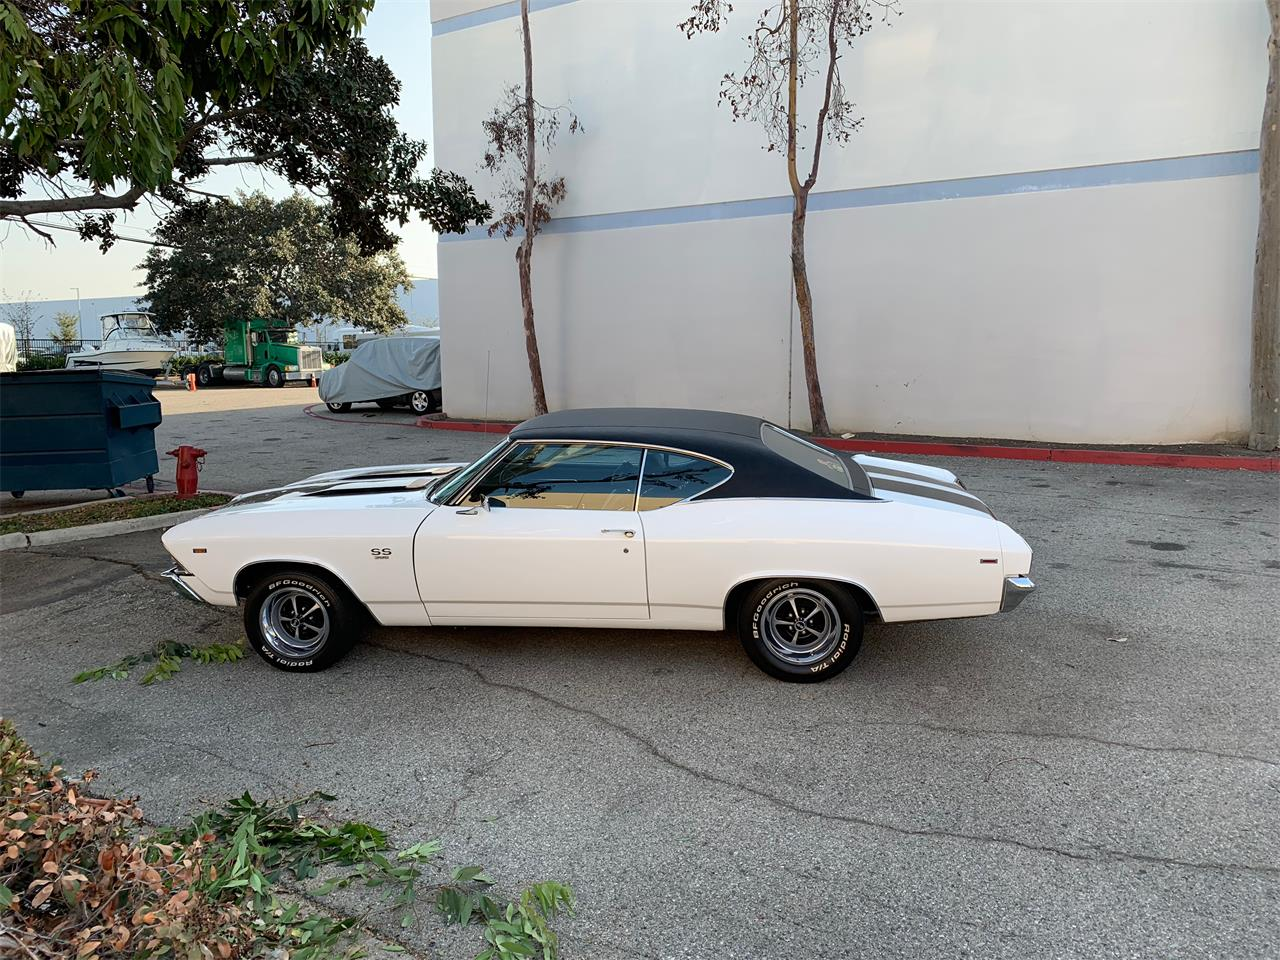 1969 Chevrolet Chevelle SS for sale in Irvine, CA